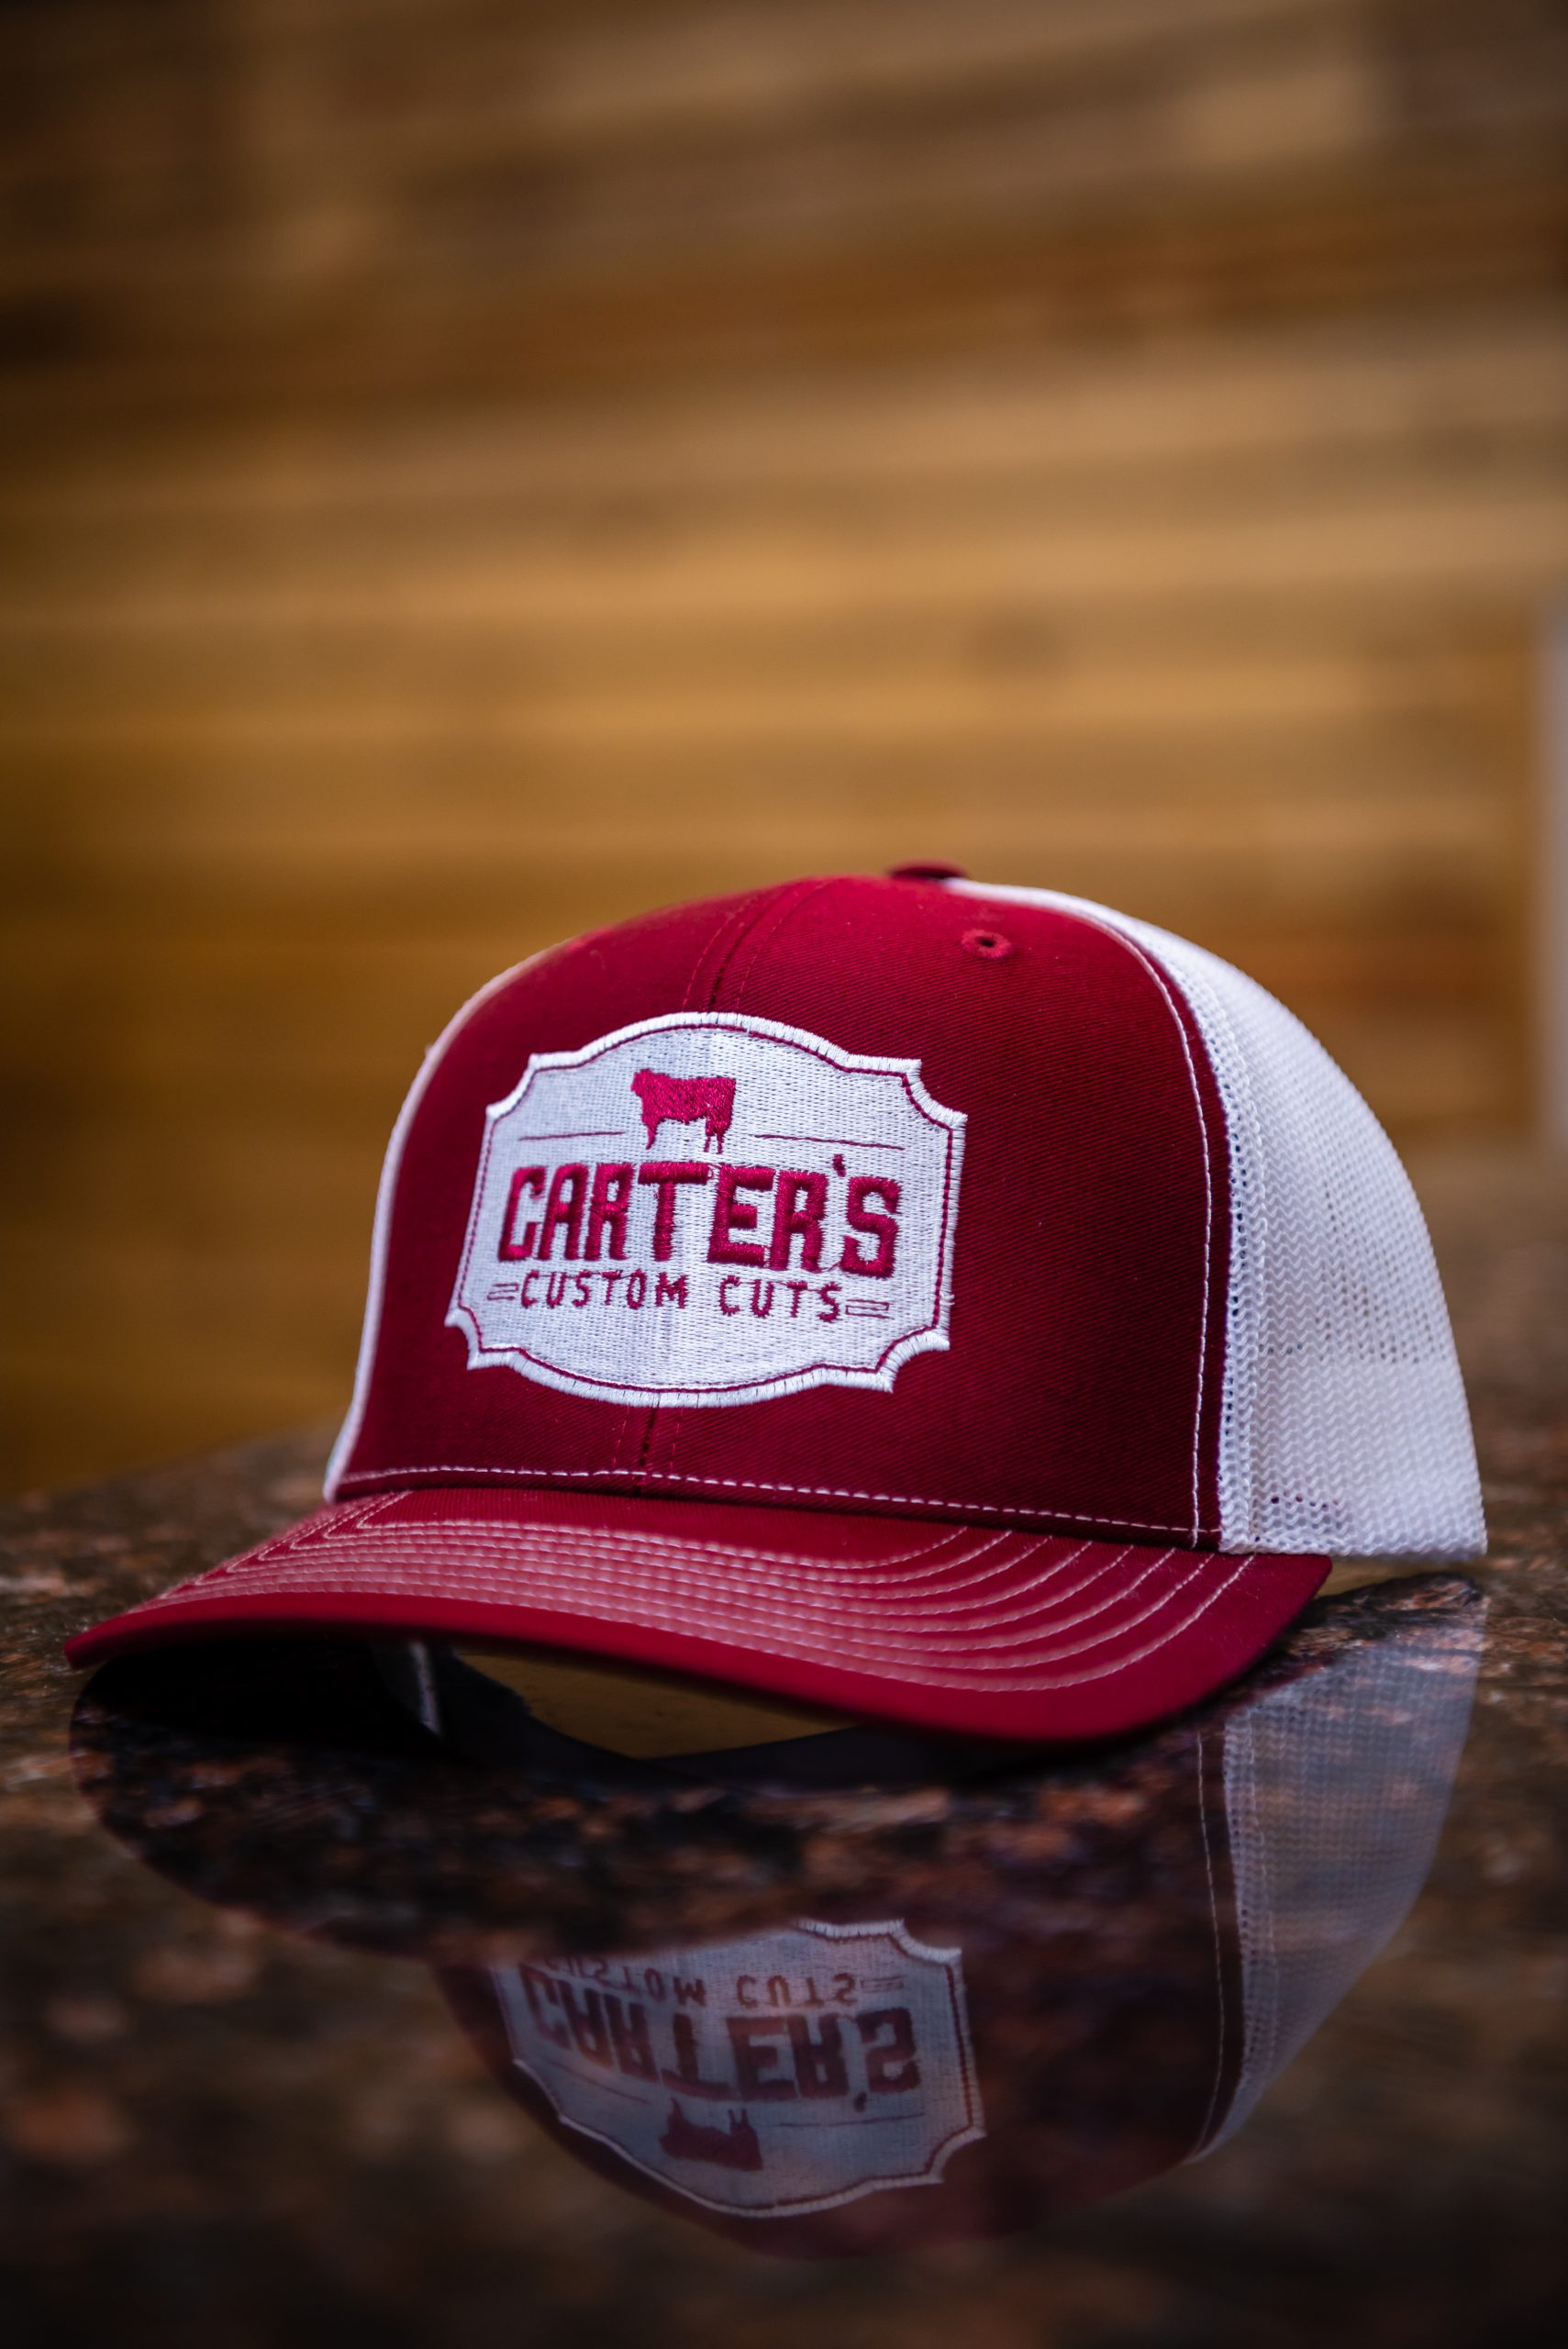 carters-custom-cuts-10_44304495942_o